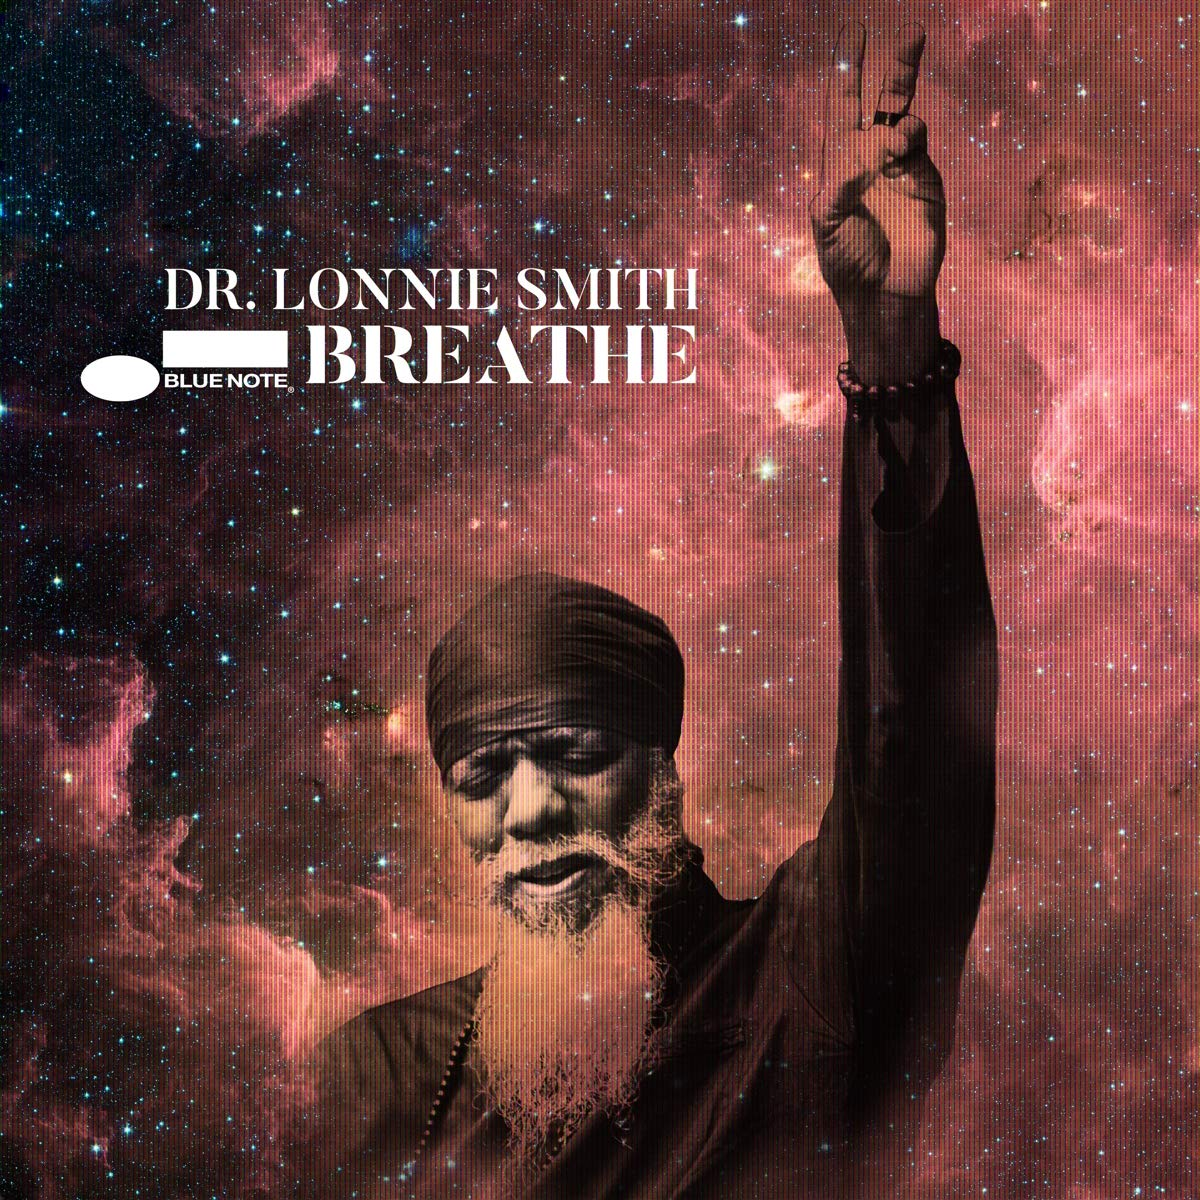 DR LONNIE SMITH - Breathe cover